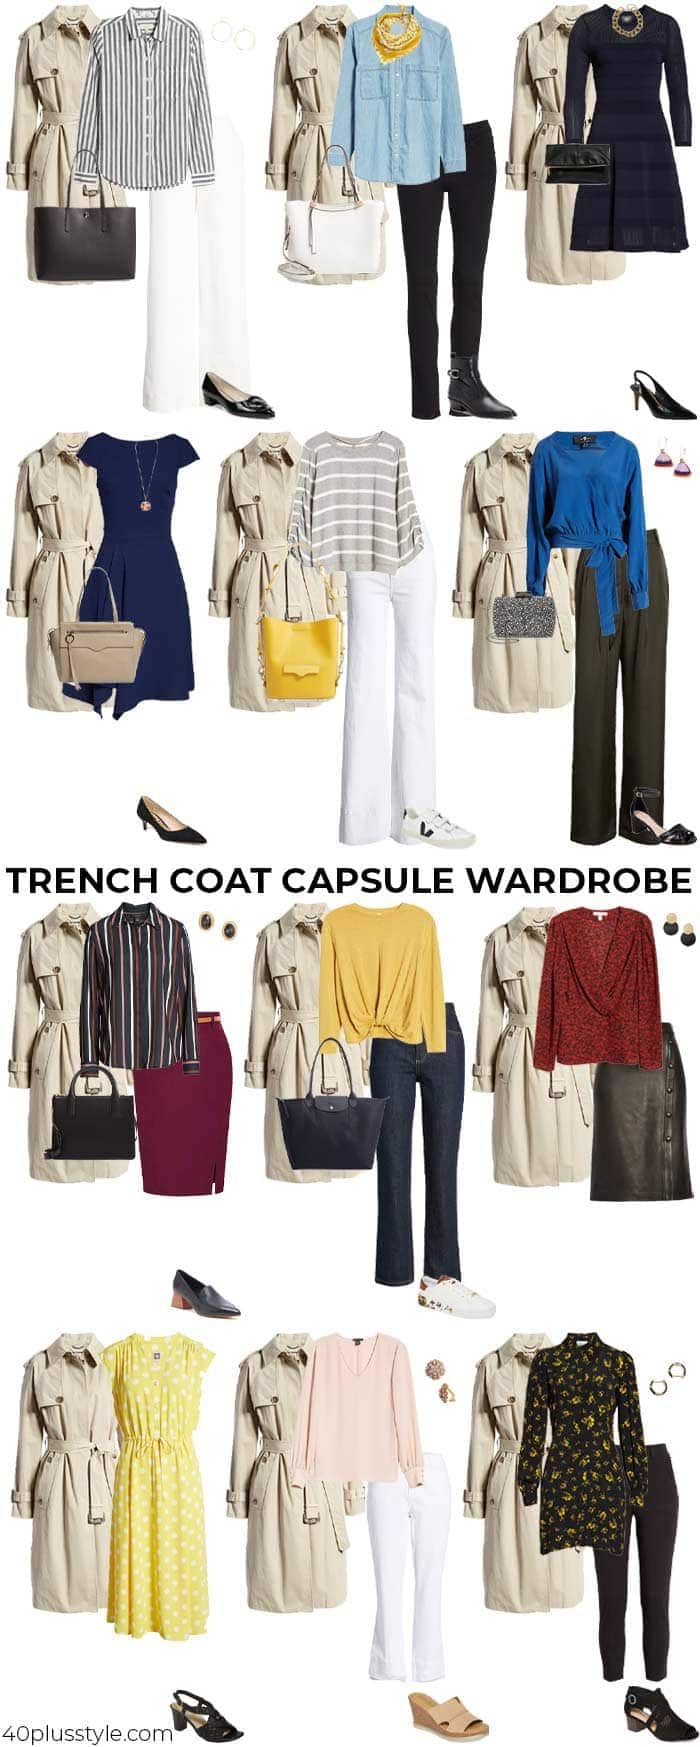 A trench coat capsule wardrobe   40plusstyle.com